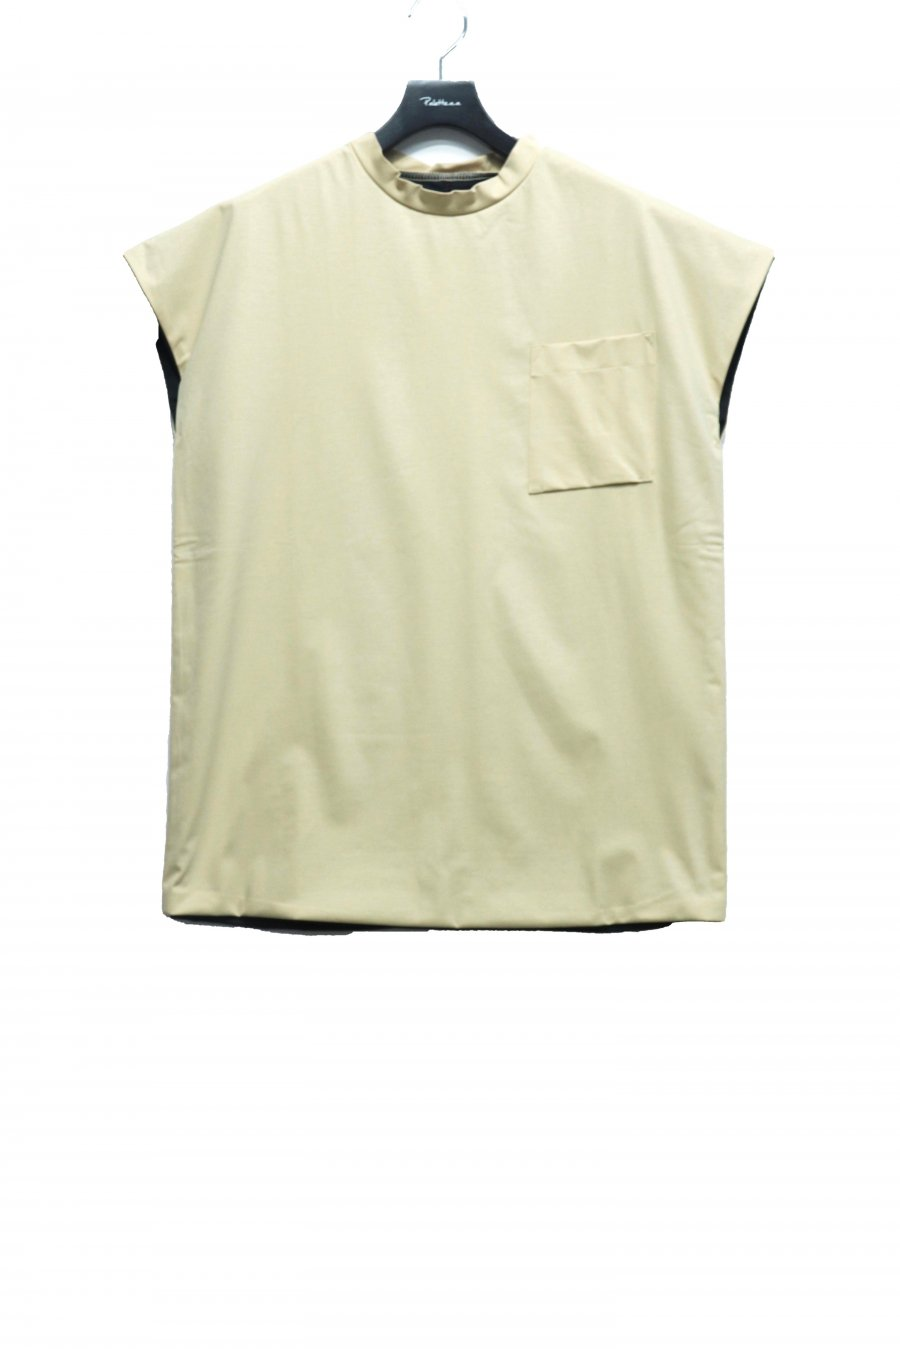 [ー]Minus  DOUBLE FACE NO SLEEVE(BEIGE)<img class='new_mark_img2' src='https://img.shop-pro.jp/img/new/icons15.gif' style='border:none;display:inline;margin:0px;padding:0px;width:auto;' />